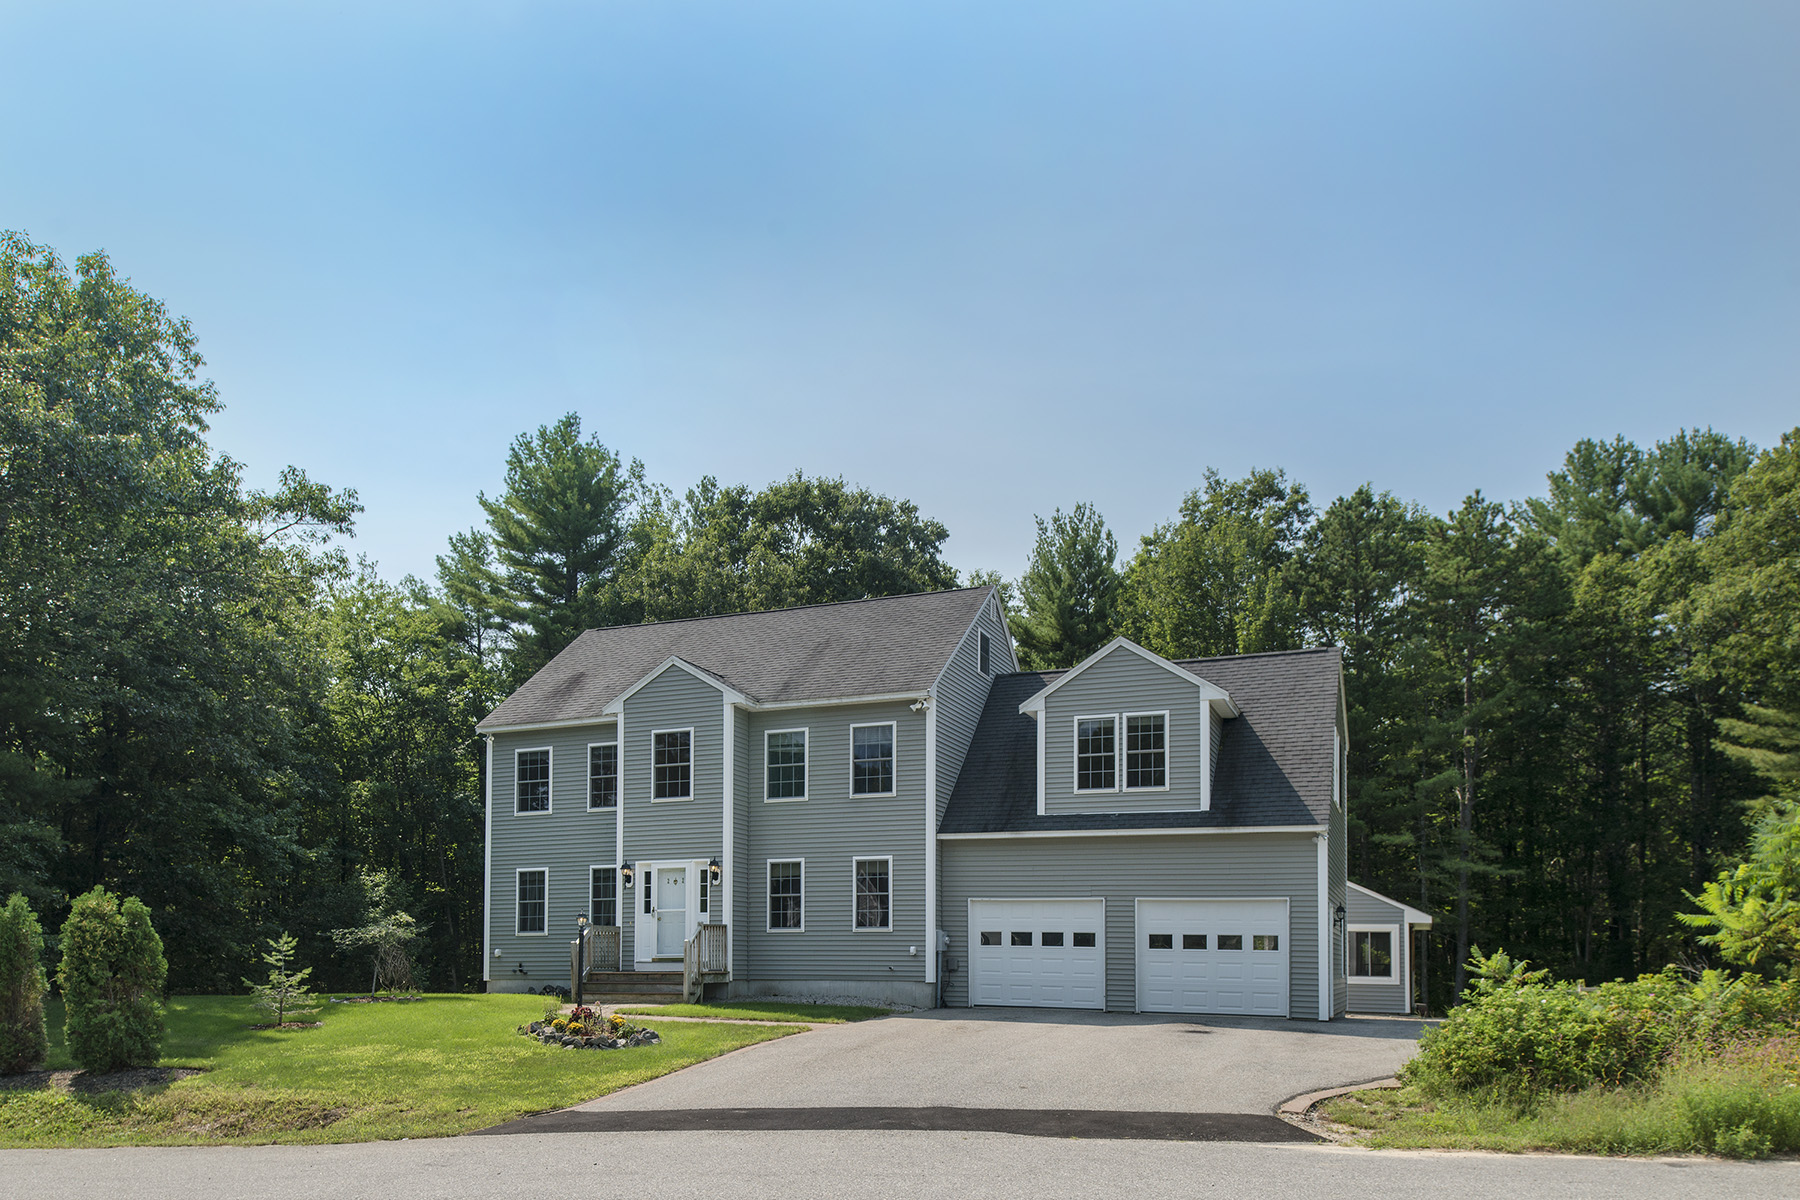 Single Family Home for Sale at 22 Kingsbury Lane Kennebunk, Maine 04043 United States